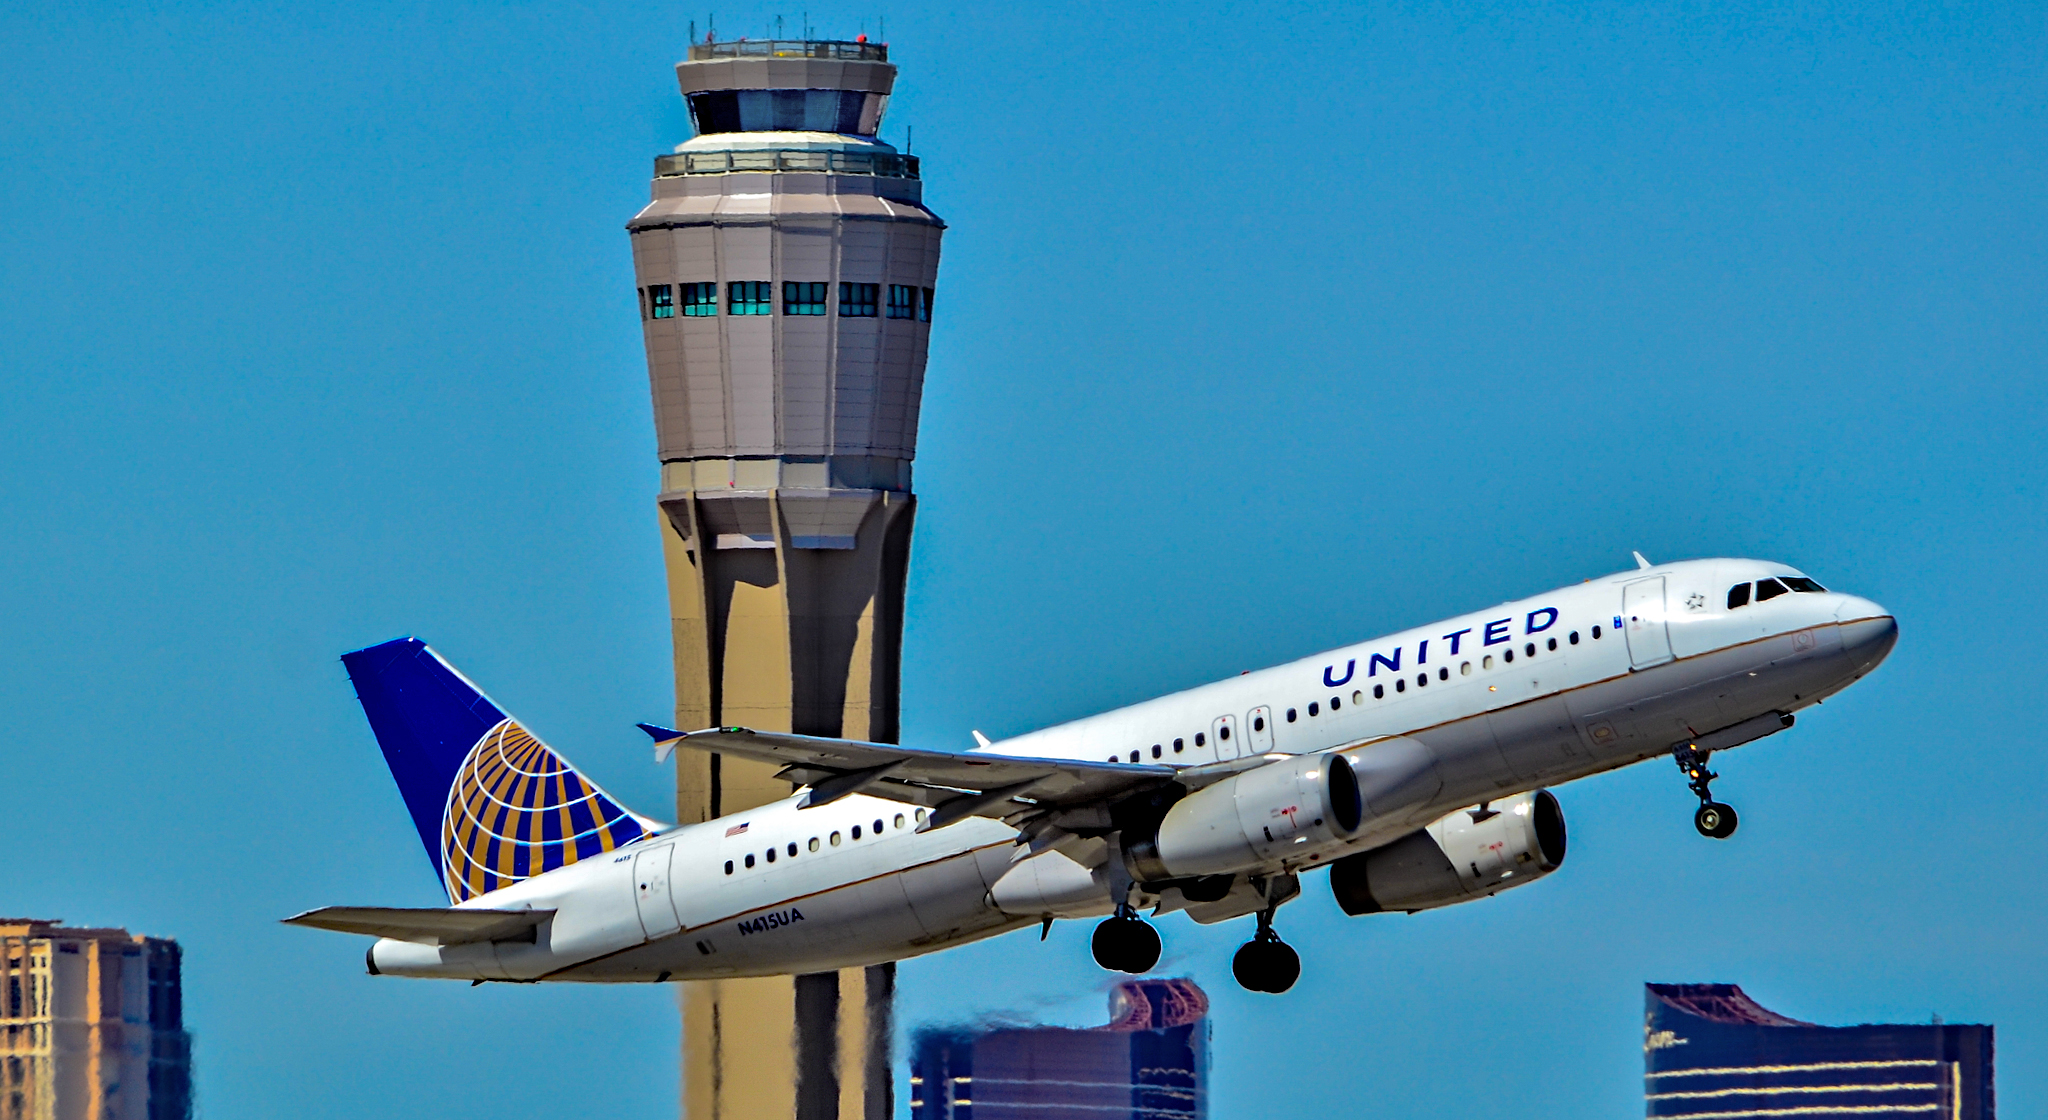 United Airlines Airbus A320 taking off